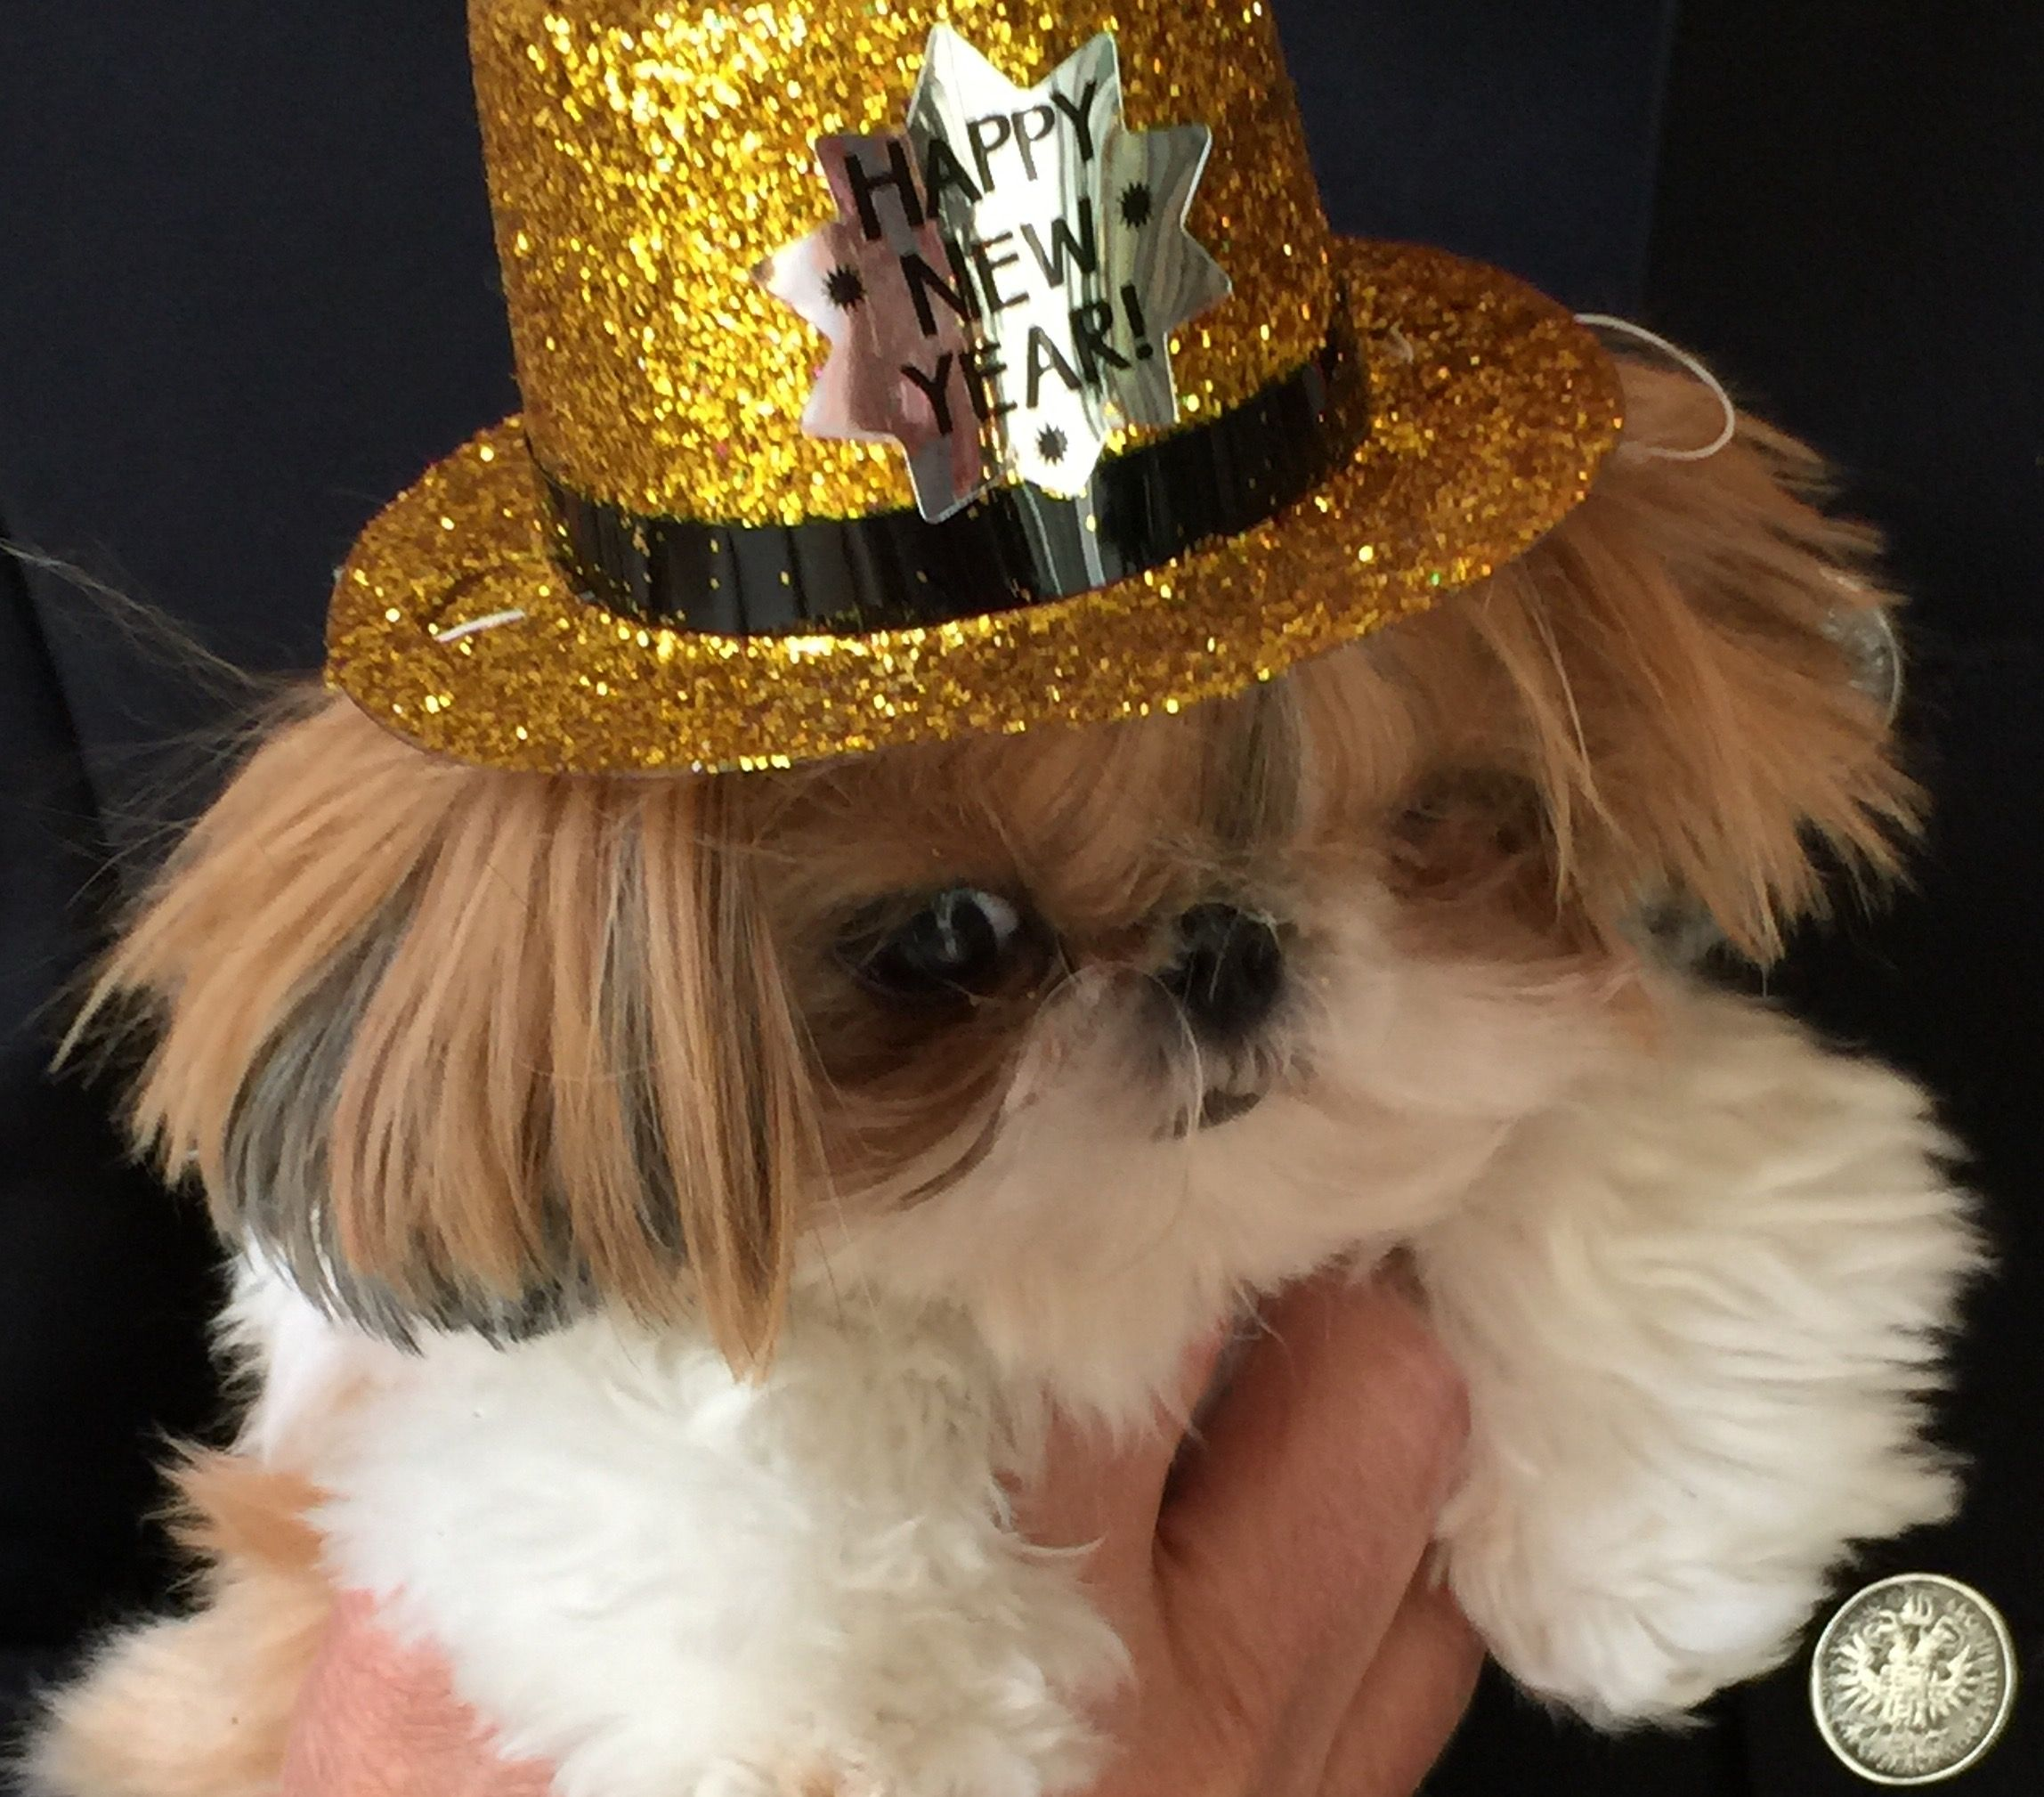 Christmas, puppy shih tzu | Dog christmas pictures, Shih ...  |Shitzu Puppies New Years Eve